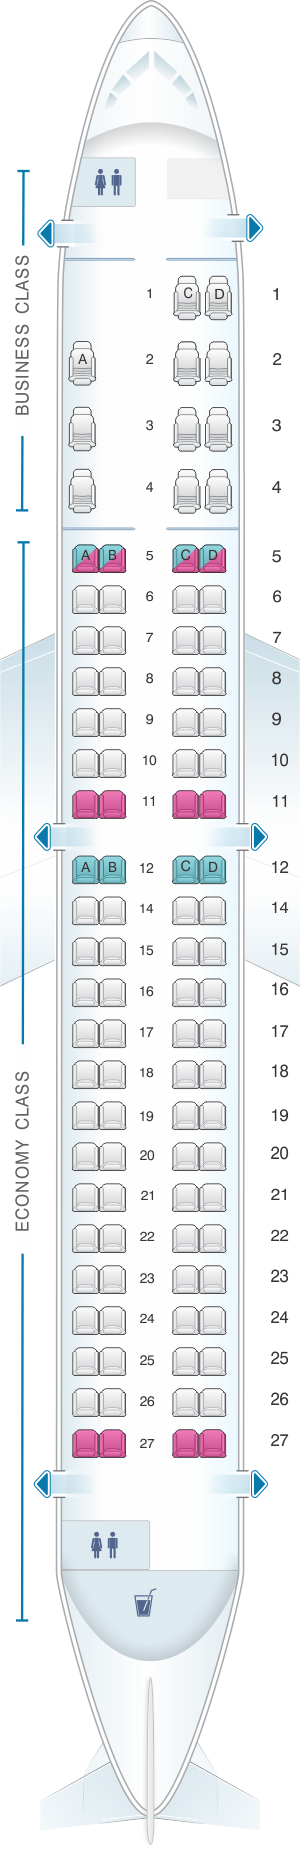 Seat map for Aeromexico Embraer EMB 190